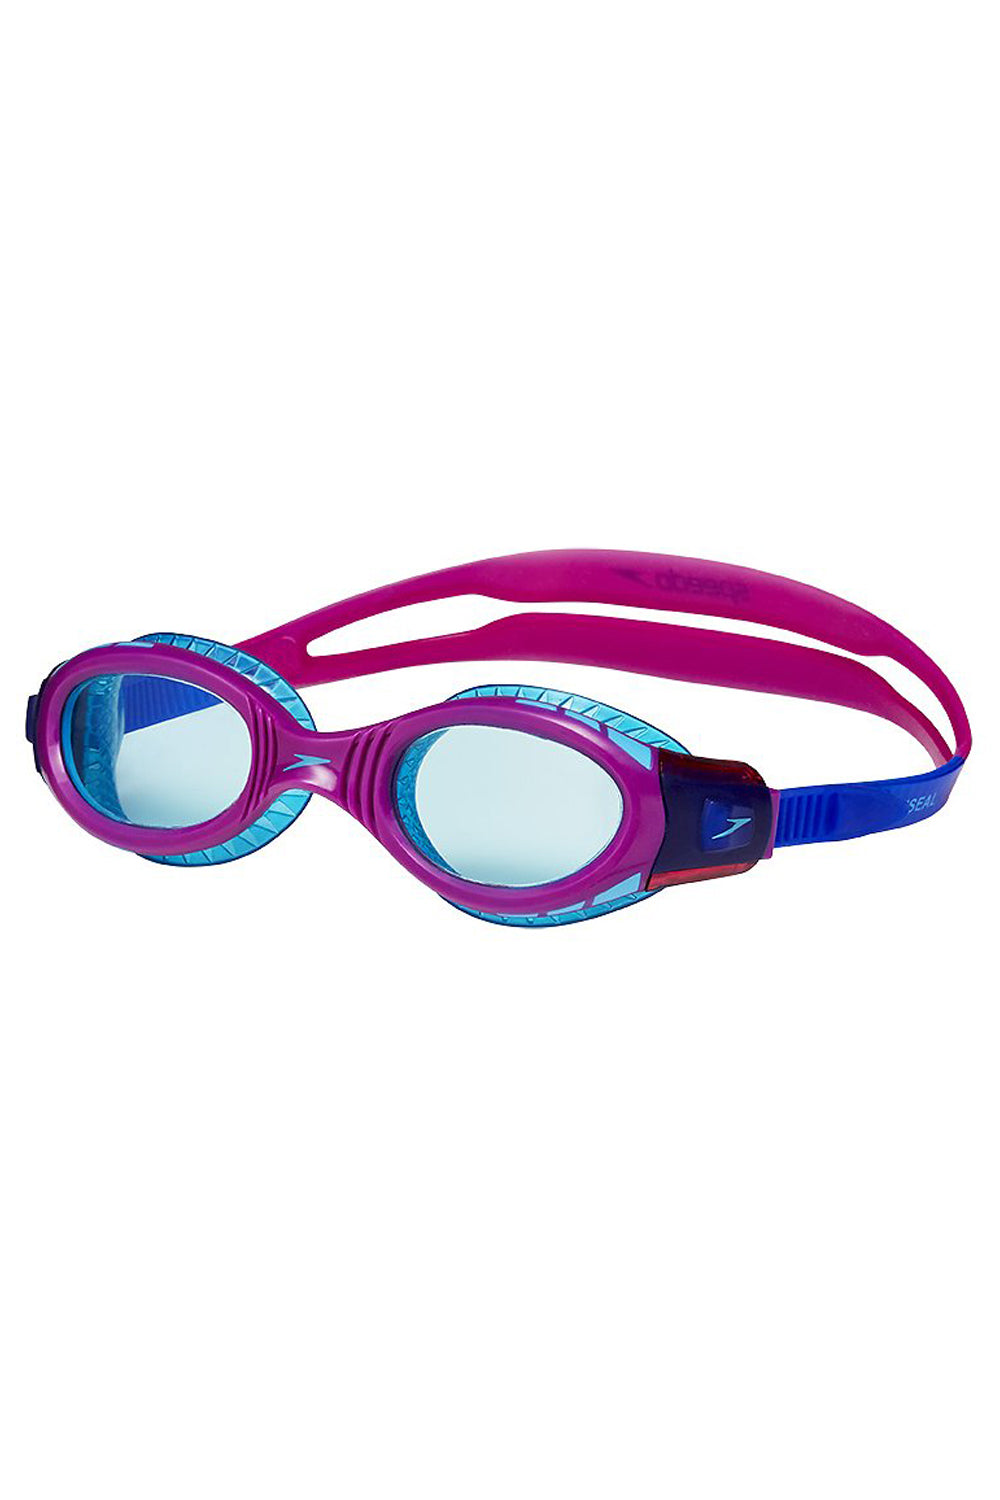 Speedo Futura Biofuse Googles - Junior